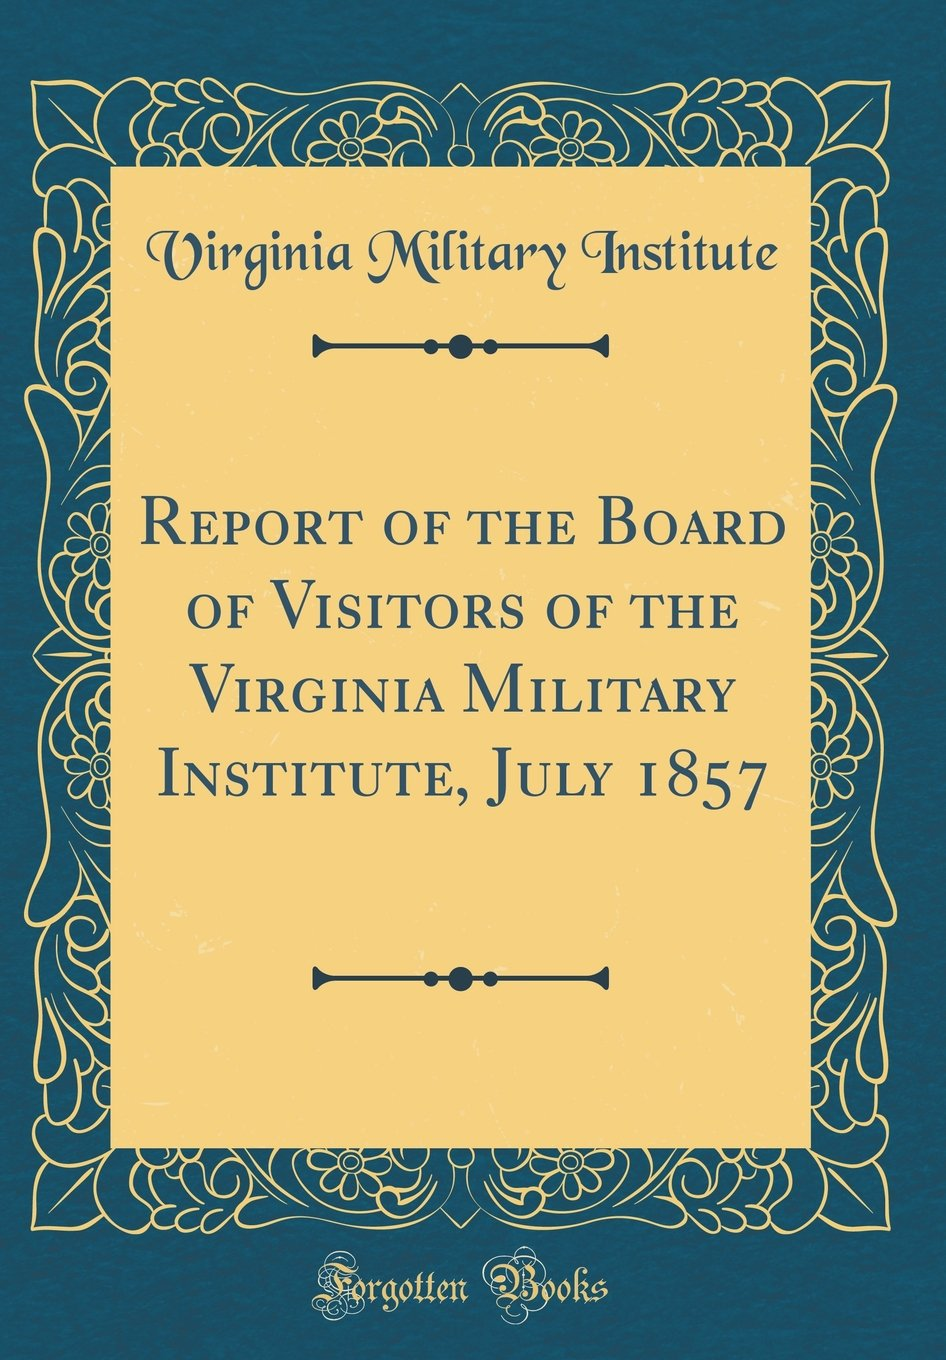 Report of the Board of Visitors of the Virginia Military Institute, July 1857 (Classic Reprint) PDF